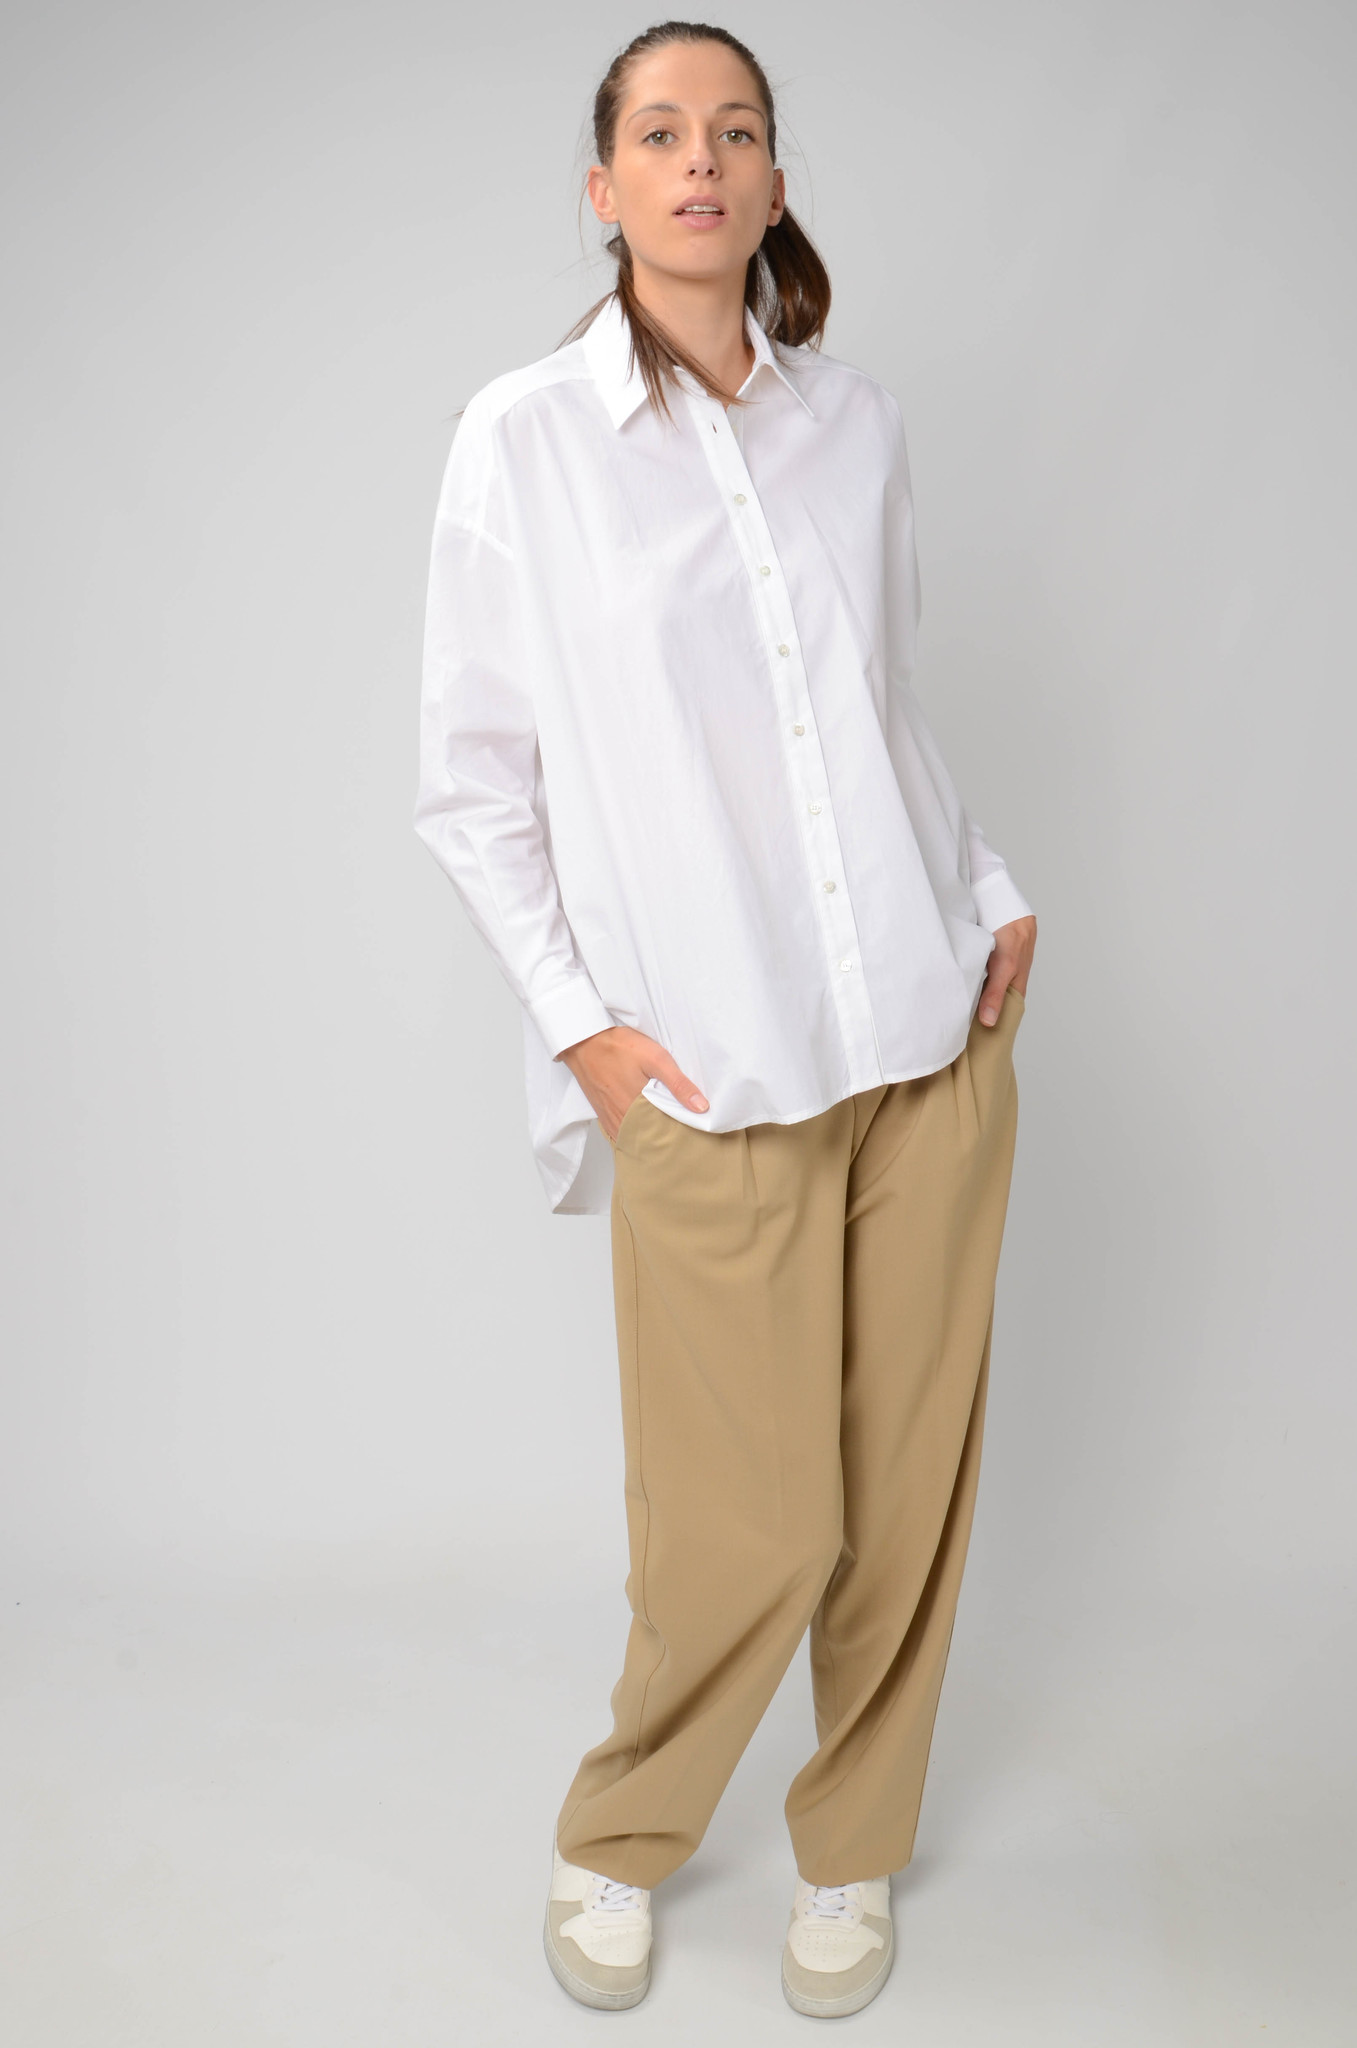 ESSENTIAL SHIRT IN WHITE-2